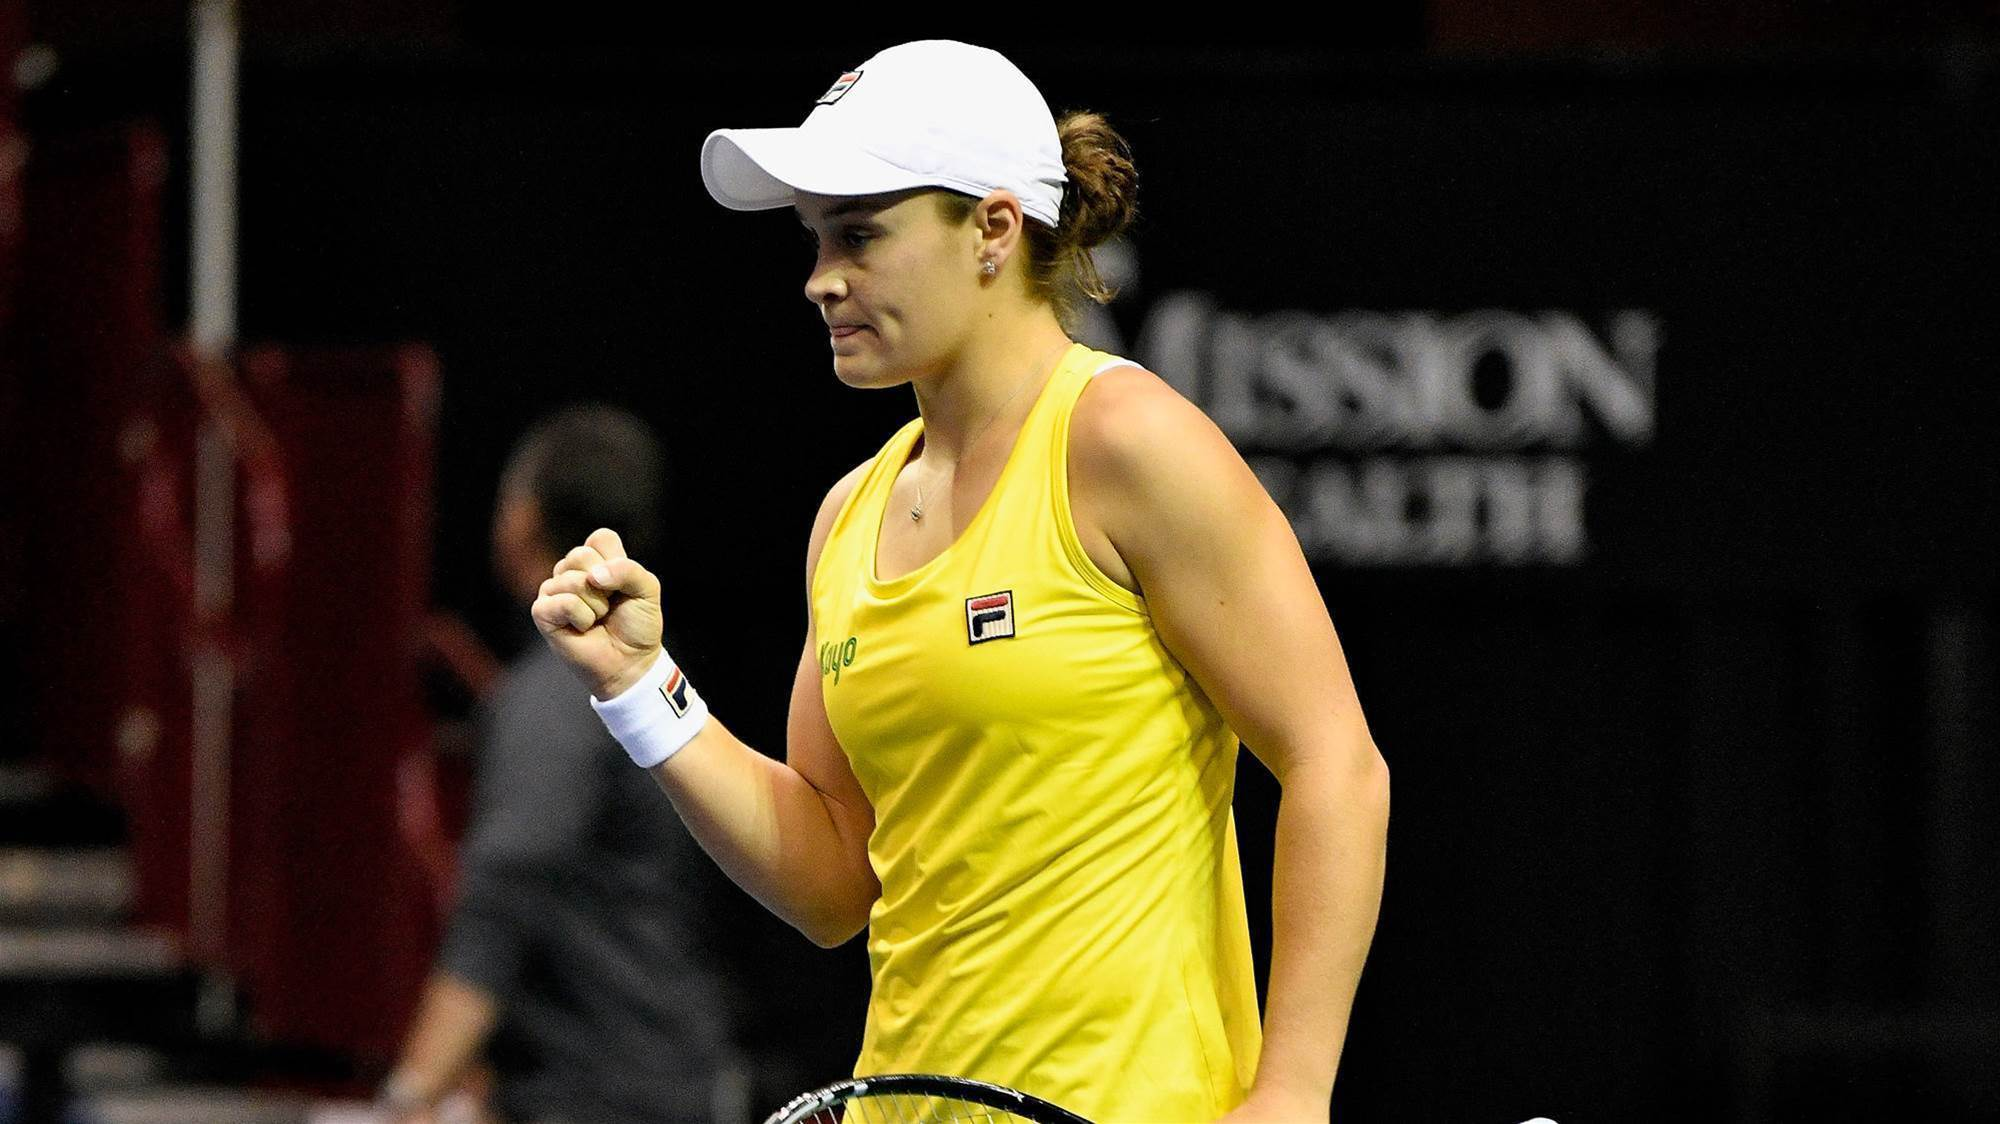 Barty returns to Queensland